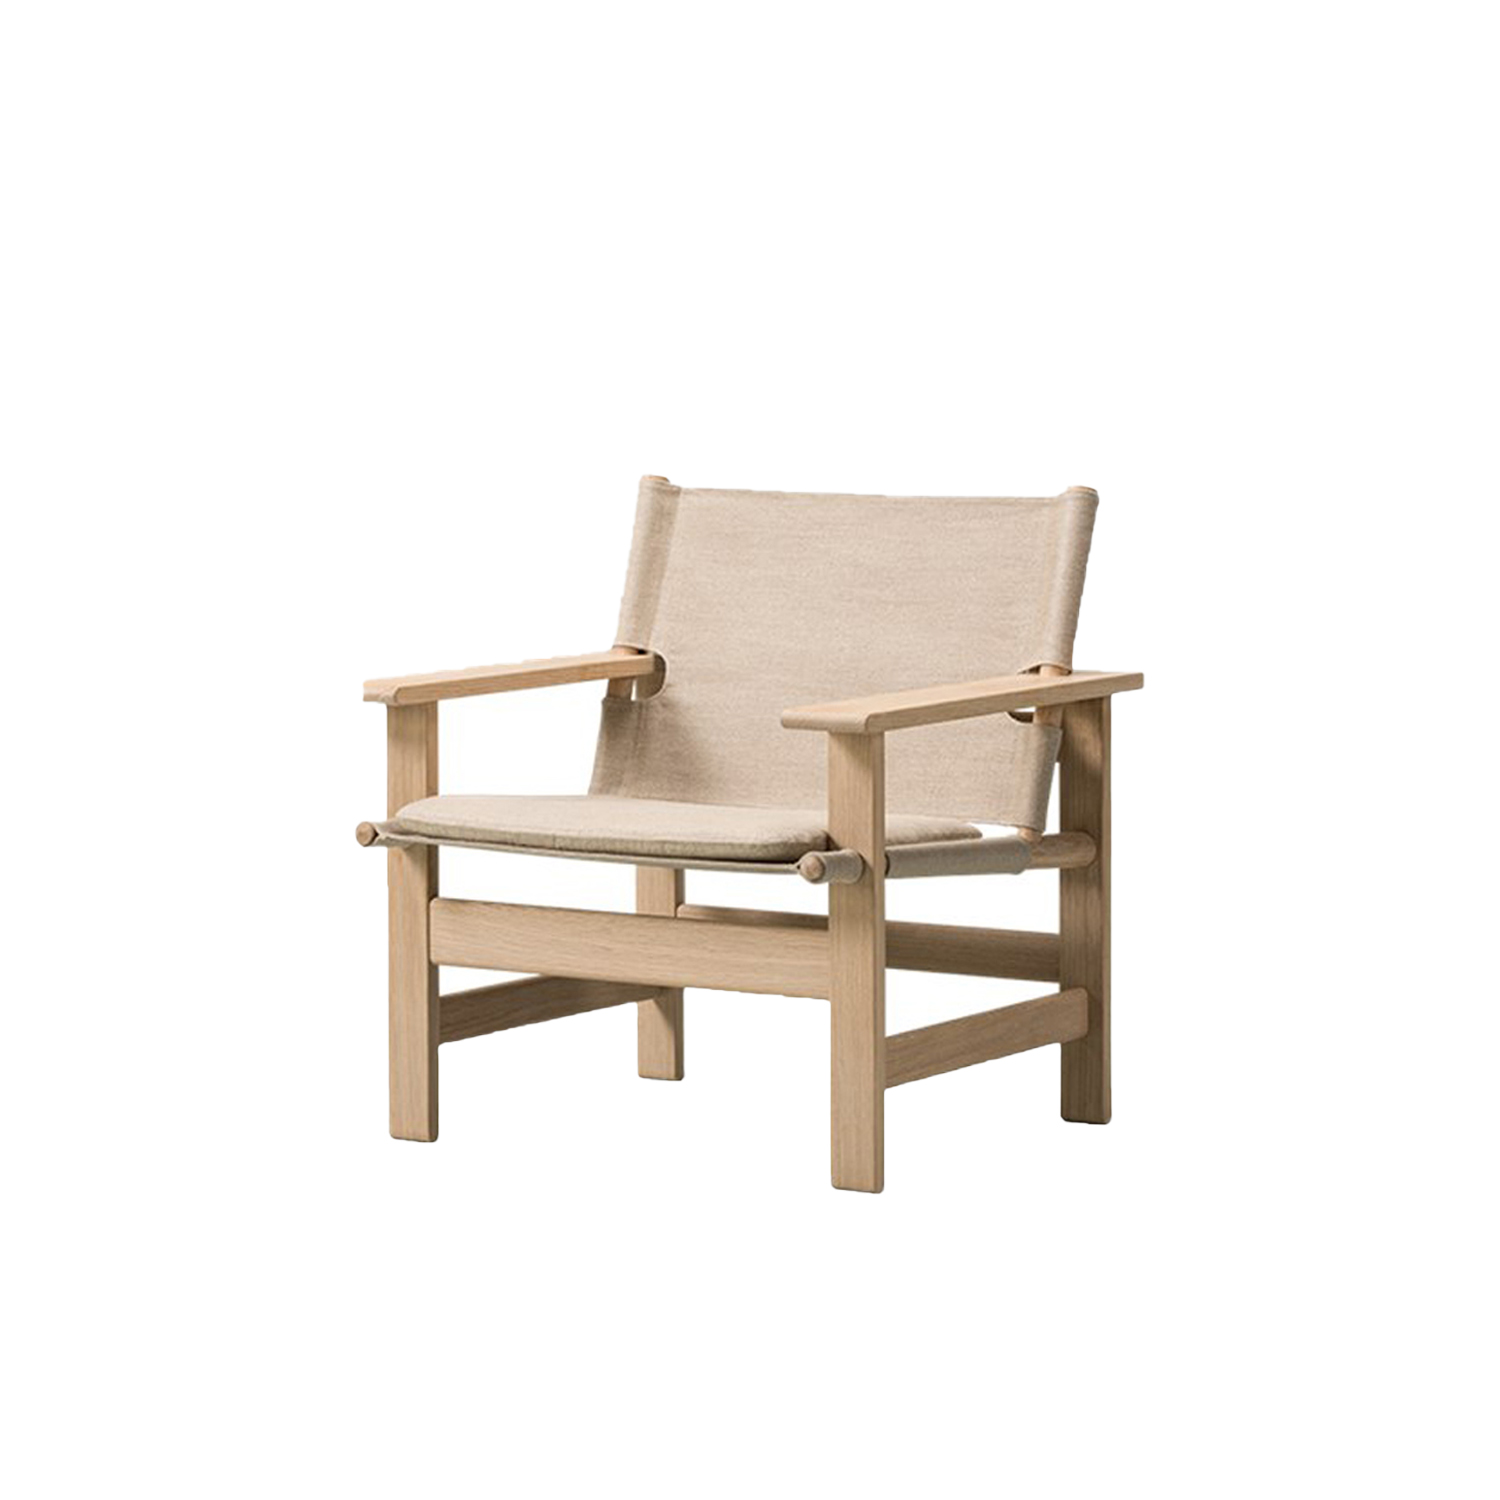 The Canvas Lounge Chair - Canvas teamed with wood define a more casual, down-to earth lifestyle in this simple, structural chair with a strong presence by Børge Mogensen. Reflecting values all the more relevant today, given its broad width that allows people to merge work and play in comfort.  The Canvas Chair exemplifies Børge Mogensen's talent for functionally-driven designs with a focus on simple, structural forms that capture the essence of an idea. With nothing to add or subtract.   Drawing on his preference for natural materials, Mogensen used flat canvas as the seat and back suspended between round pieces of wood, together with his trademark use of horizontal and vertical lines for the frame. The result is contrast and an uncanny sense of balance.   Although it was designed in 1970 as a reaction to flashy furniture from the 1960s, The Canvas Chair takes on even more relevance today, given its earthy informality and honest materials. Boasting an unadorned authenticity which modern audiences find especially appealing.   Prime European oak and linen canvas are both available in black or natural coloured versions, with an optional loose seating cushion in canvas or leather.   One of the last pieces Mogensen designed before his untimely death in 1972, The Canvas Chair has remained in our archives ever since – until now. Whether in a hotel, lounge, retail space or private home, it's a statement piece with a strong presence.  Please enquire for seat cushion  | Matter of Stuff